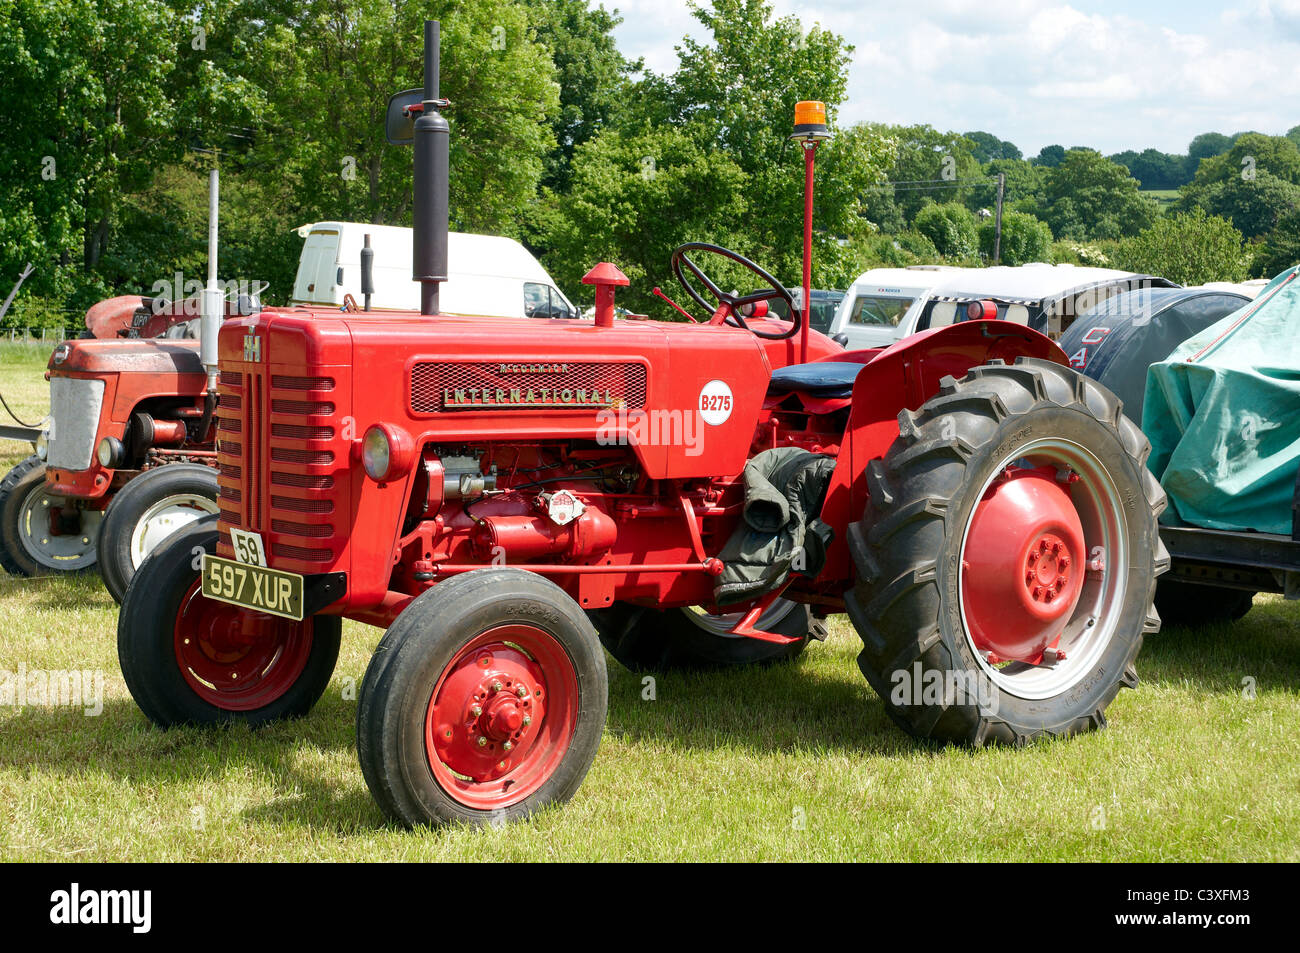 McCormick International B-275 tractor displayed at a steam and vintage fair  - Stock Image